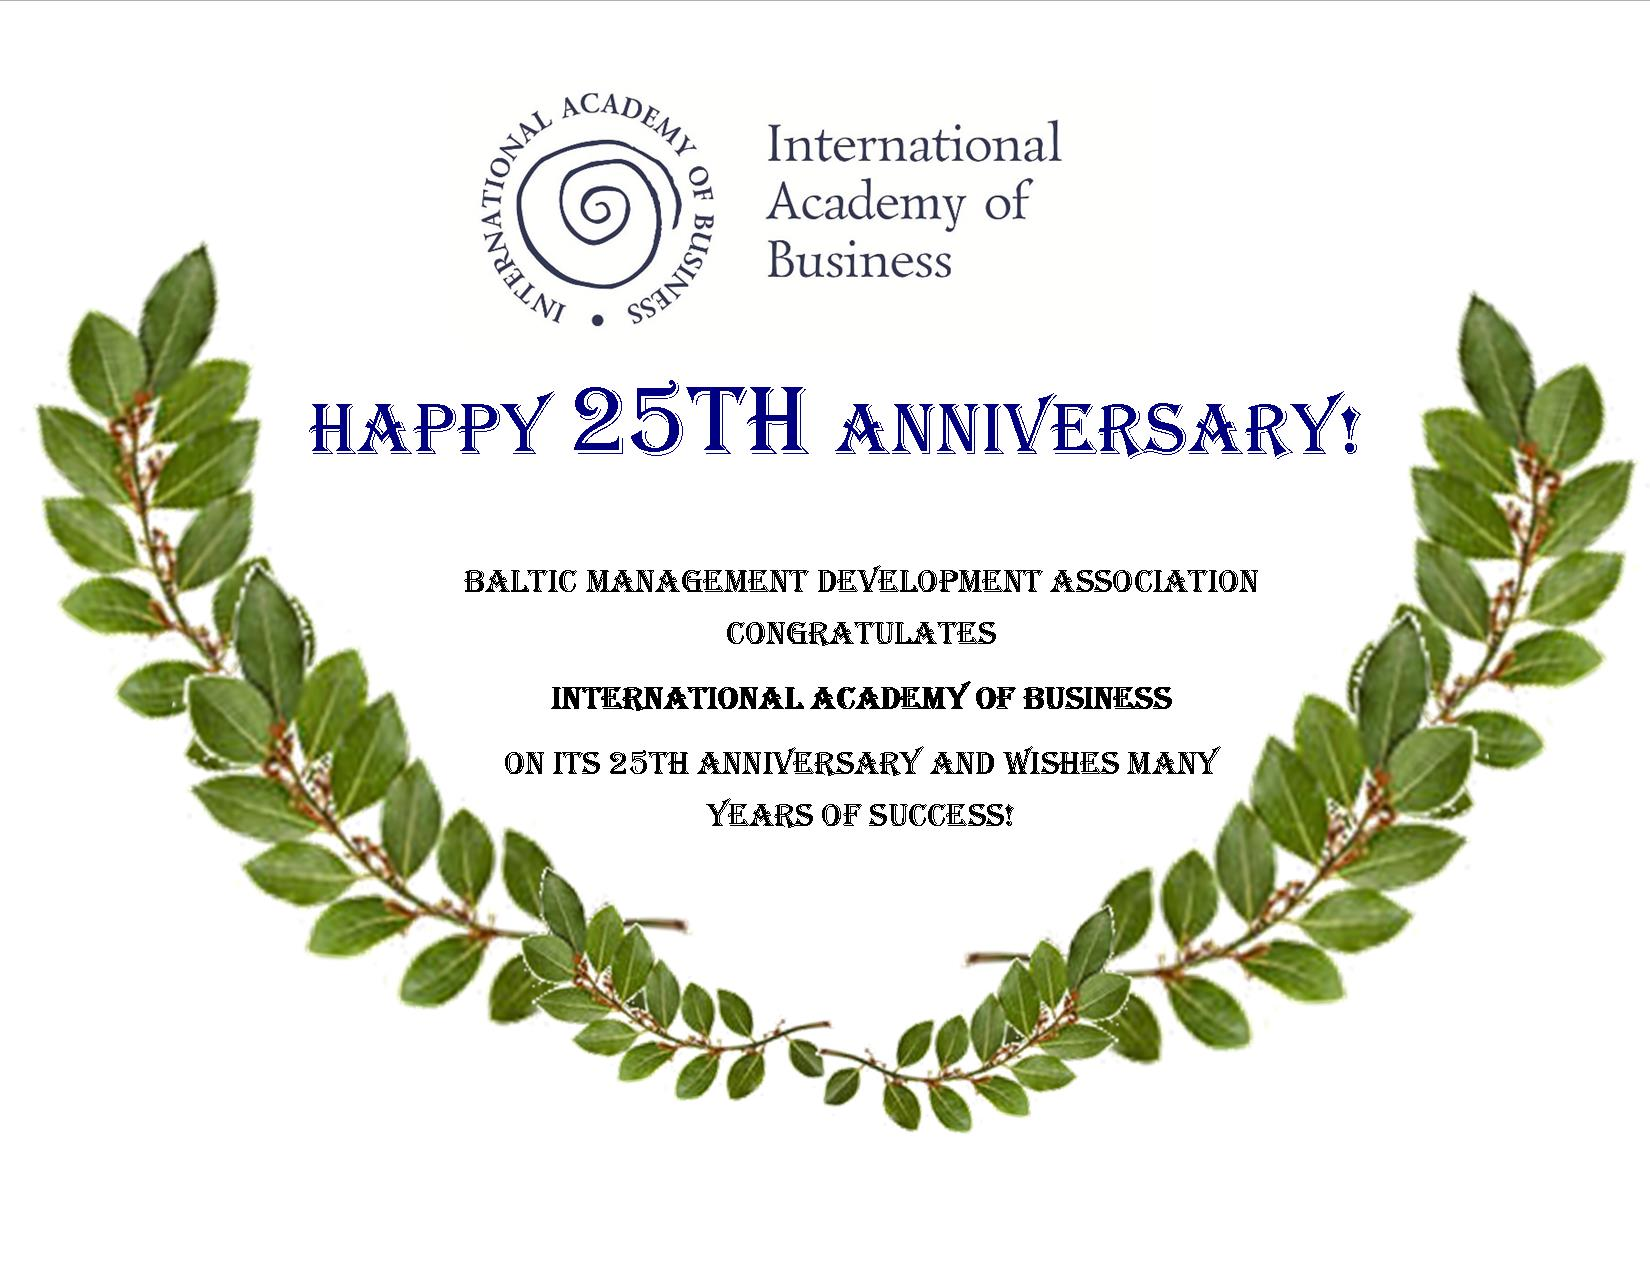 Congratulations to international academy of business on